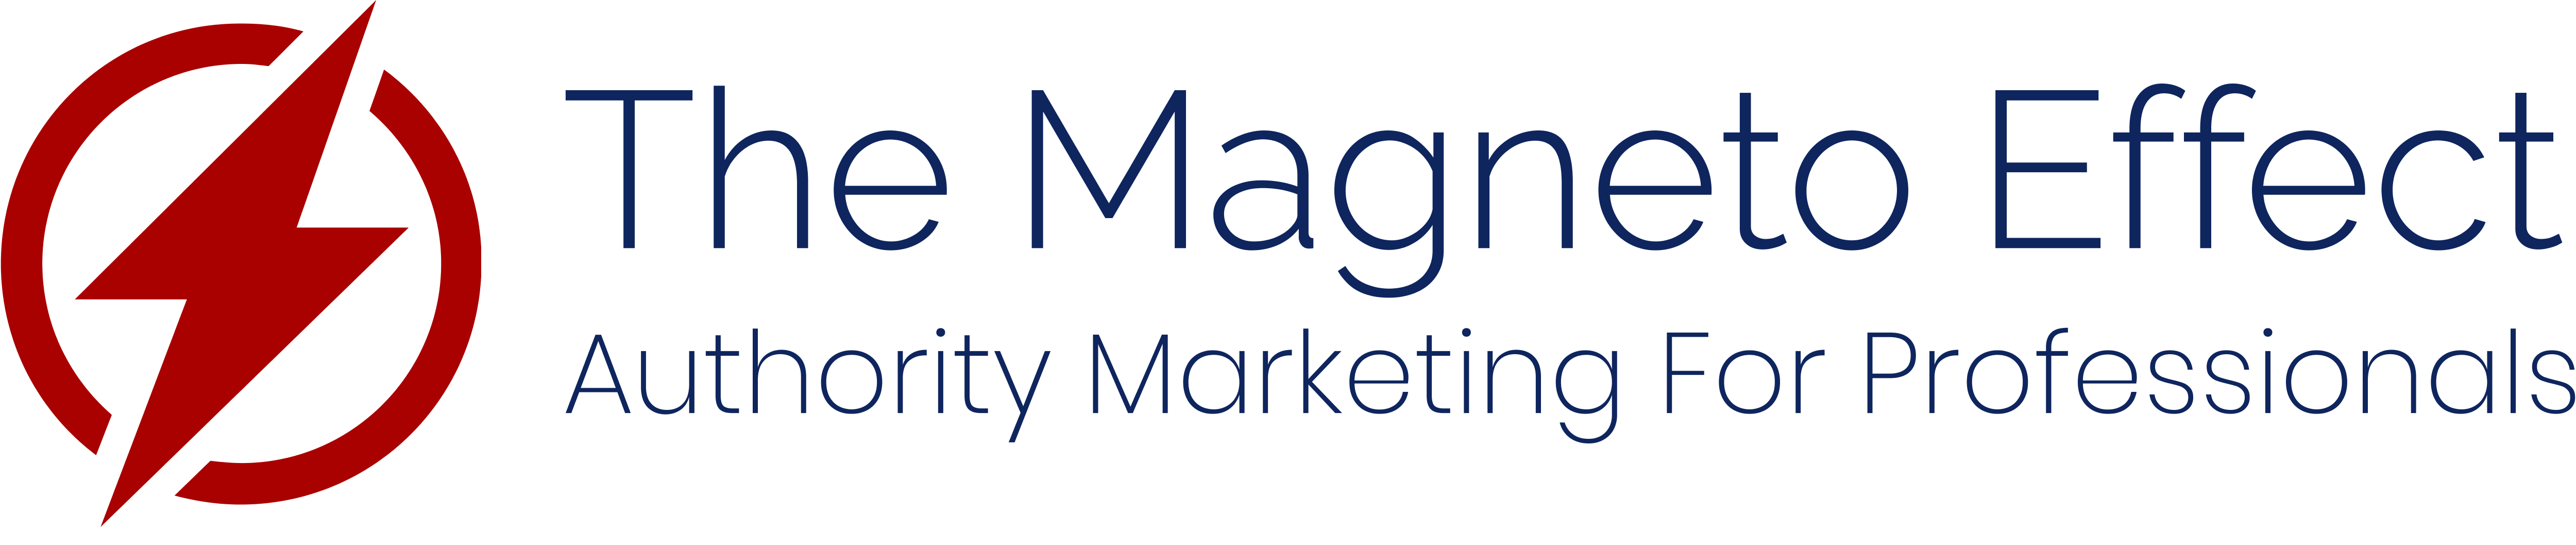 Law Firm Digital Marketing